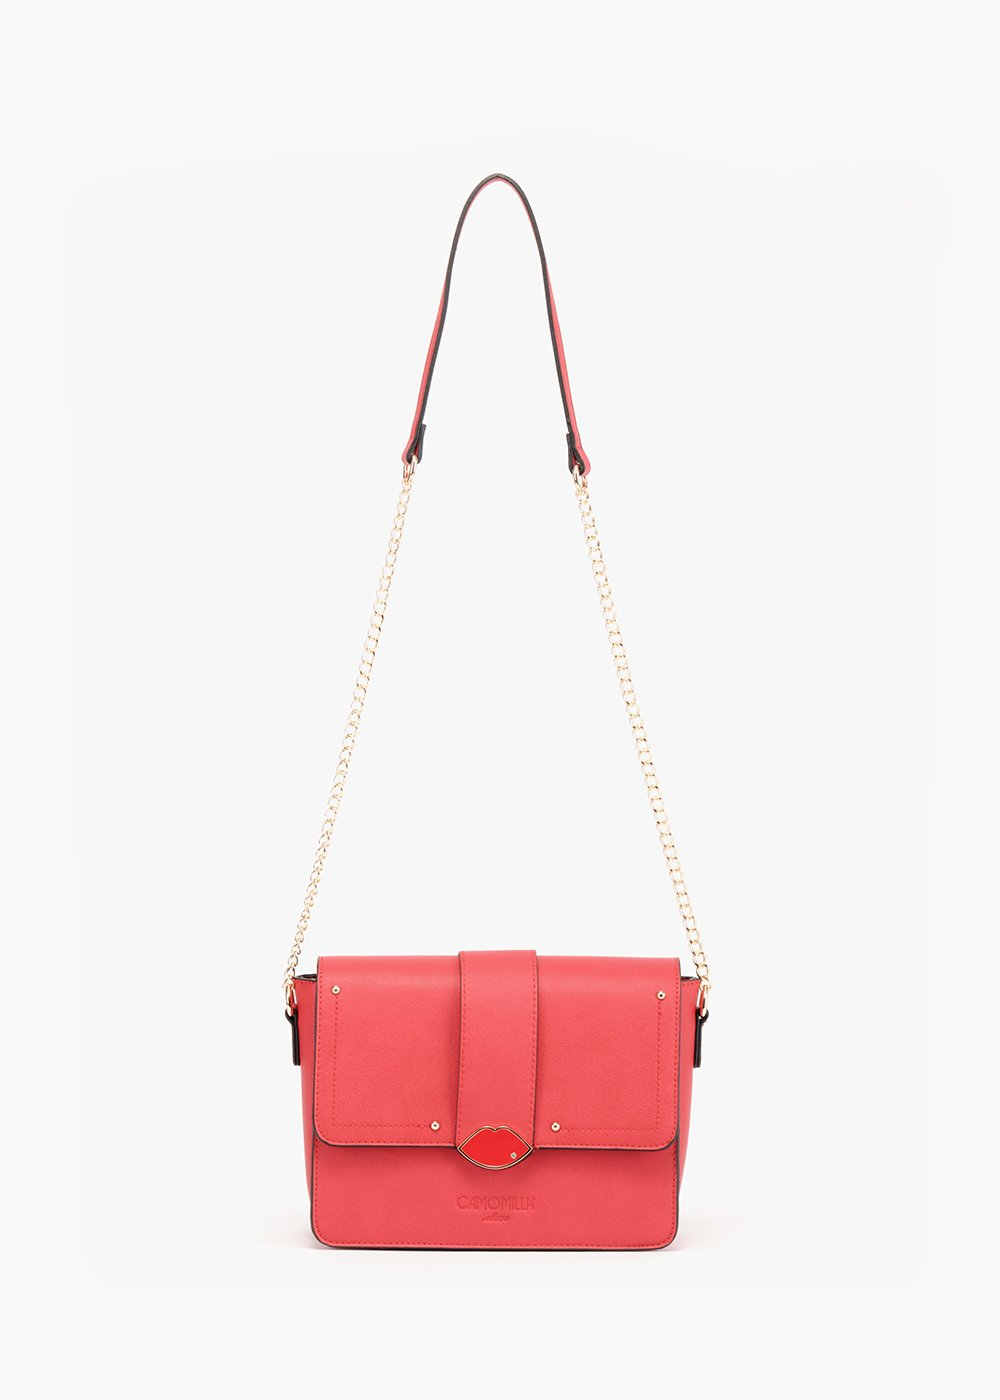 Brand pochette with enamelled mouth closure - Red - Woman